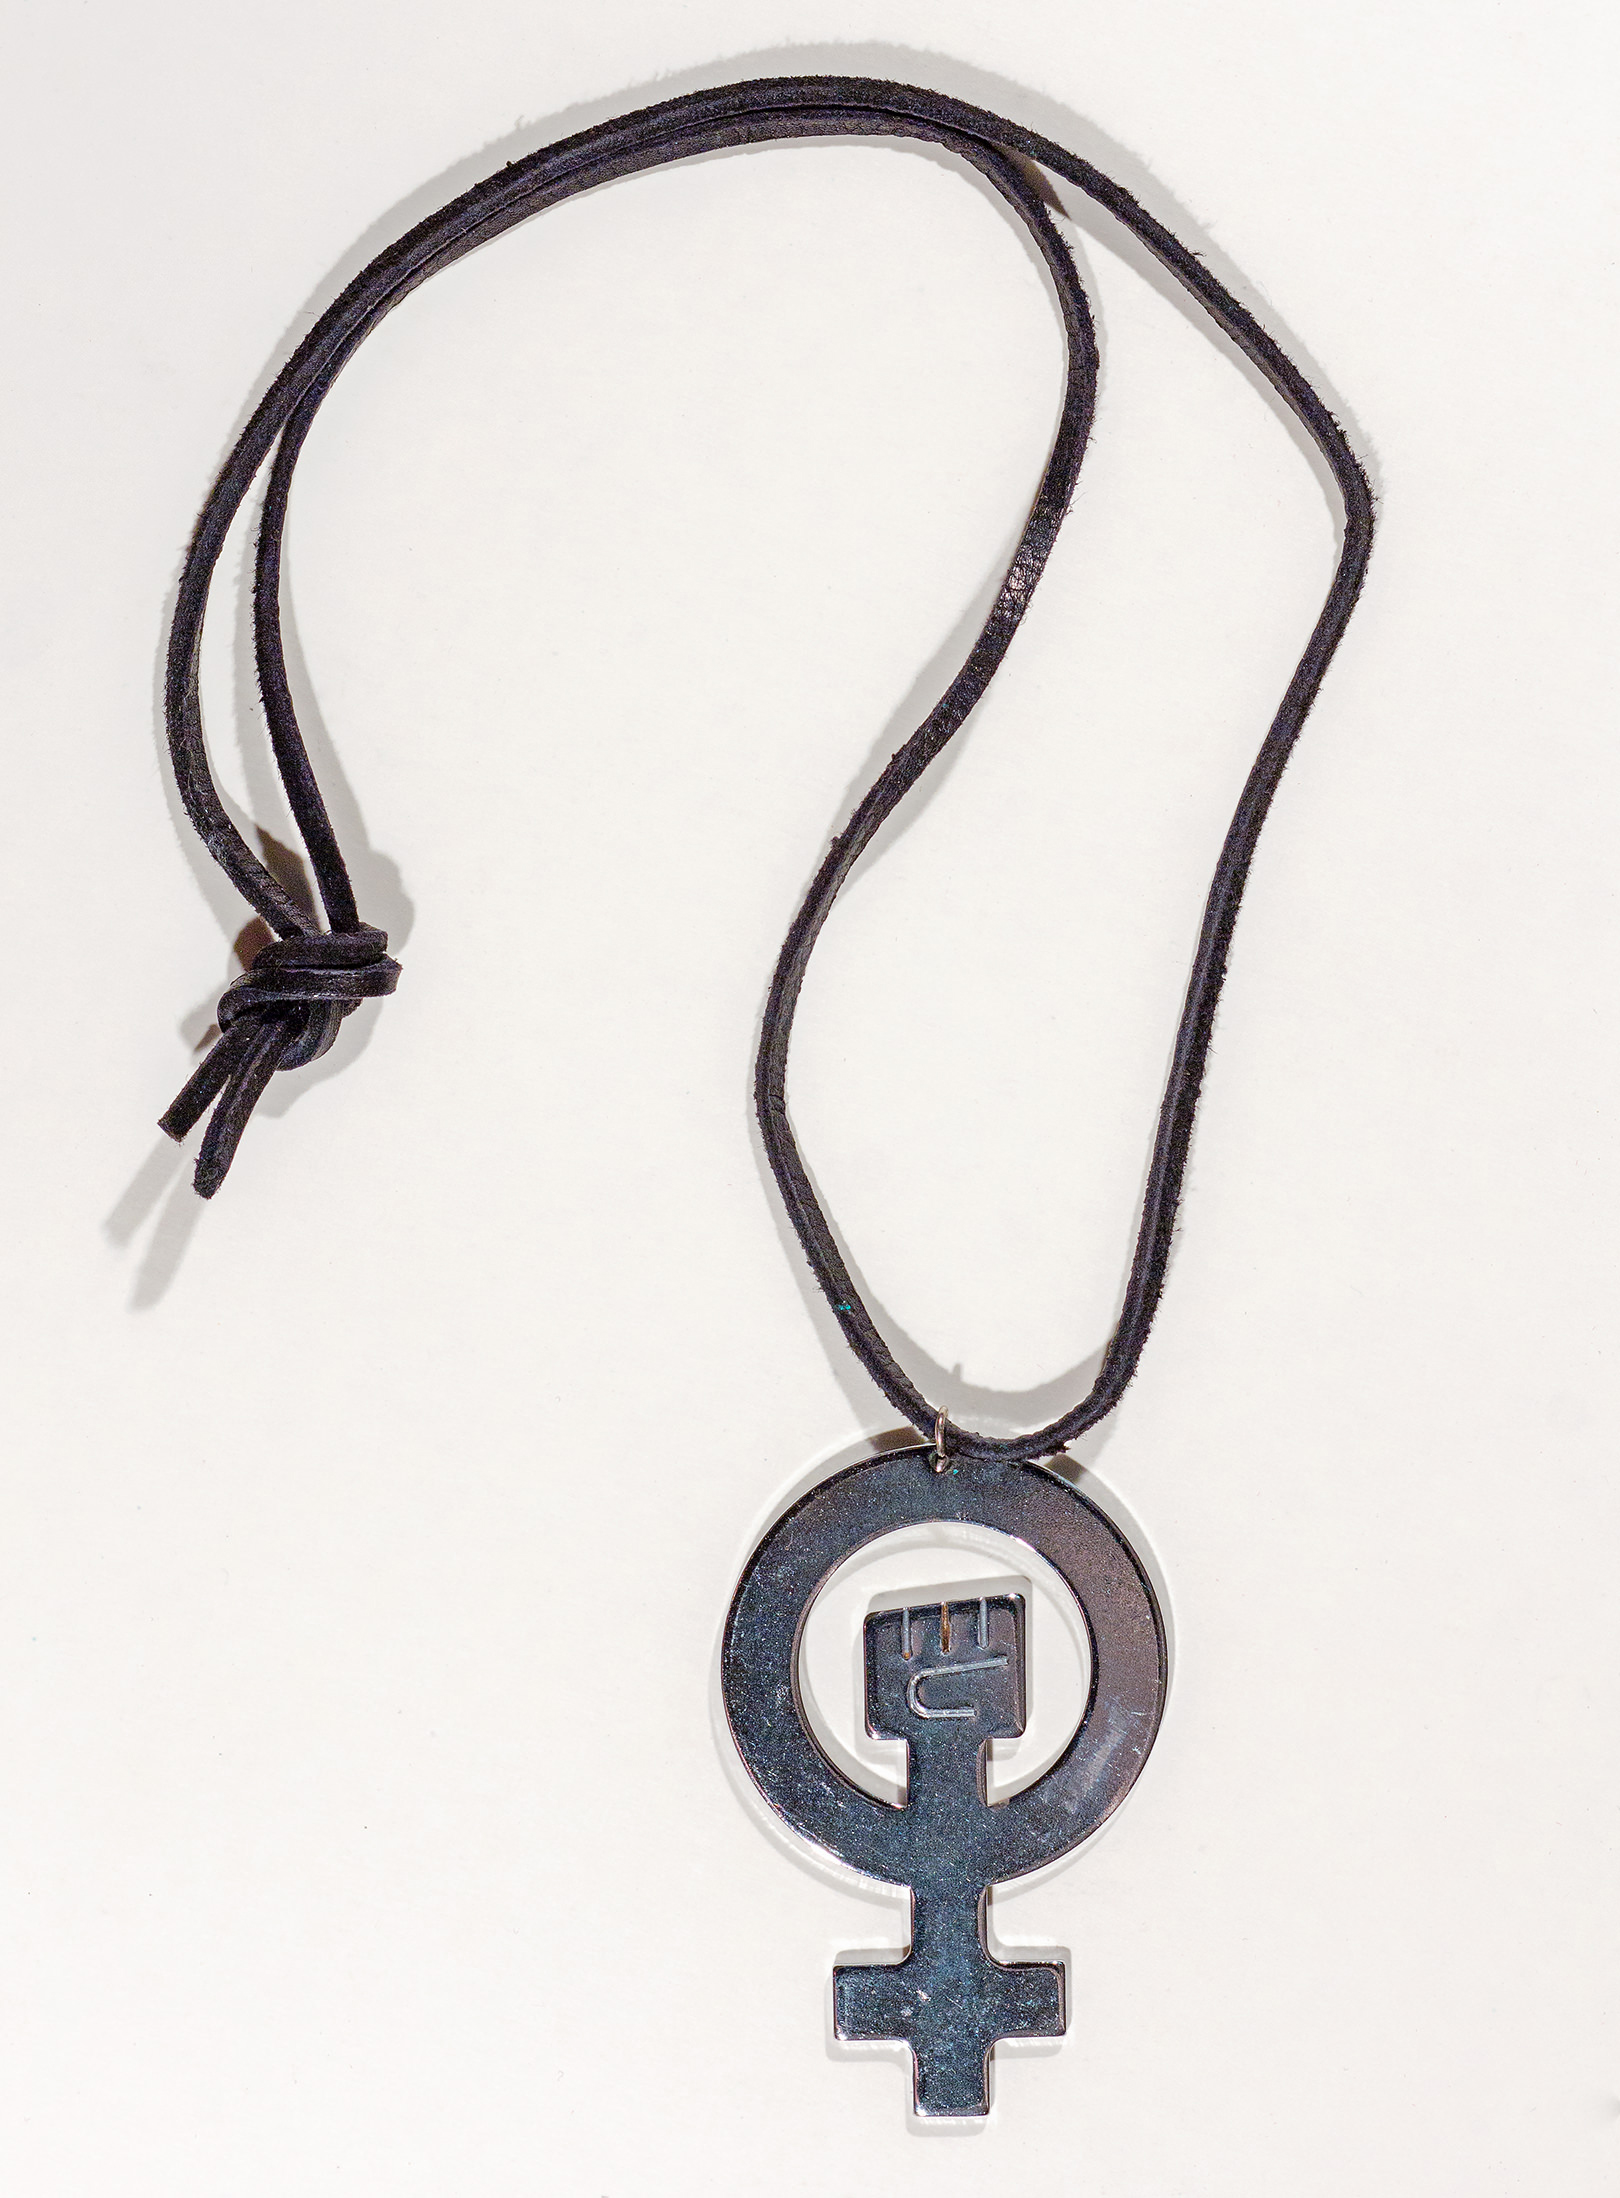 Women's activism necklace